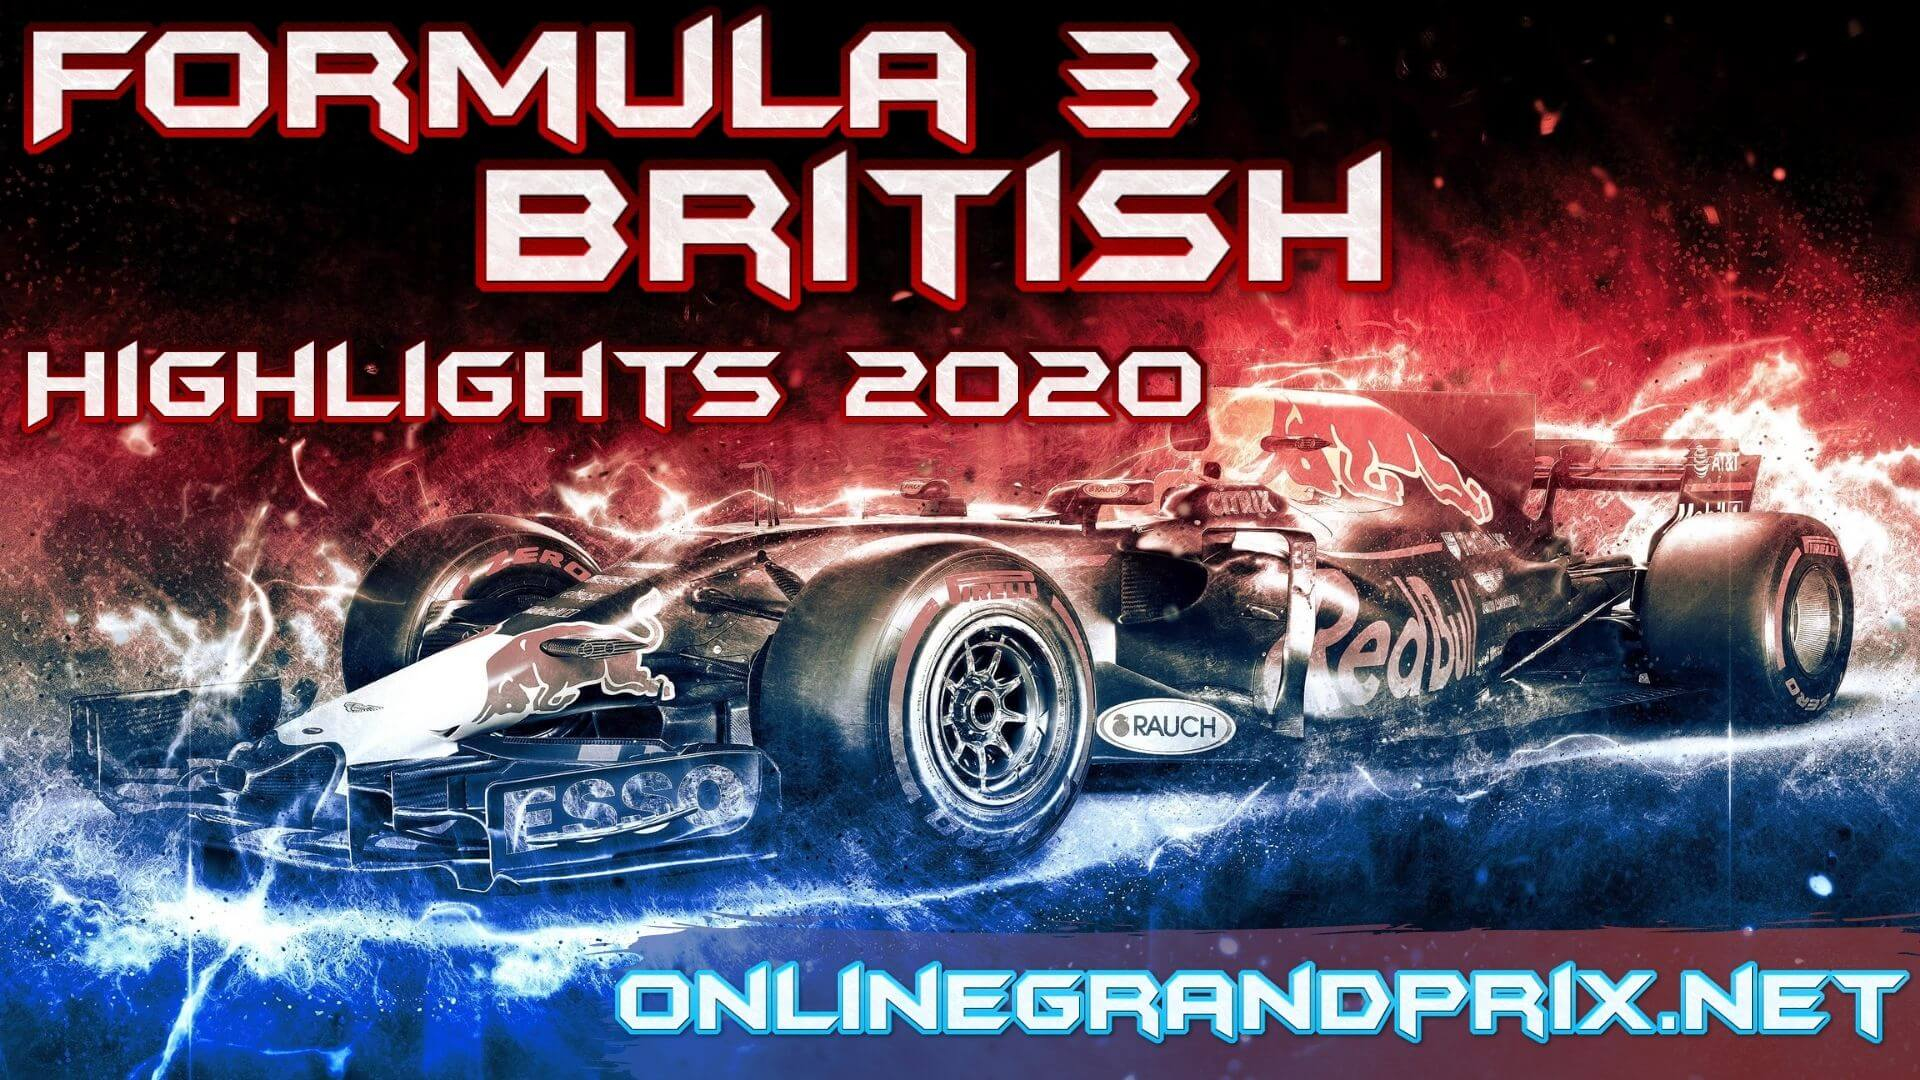 British GP F3 Highlights 2020